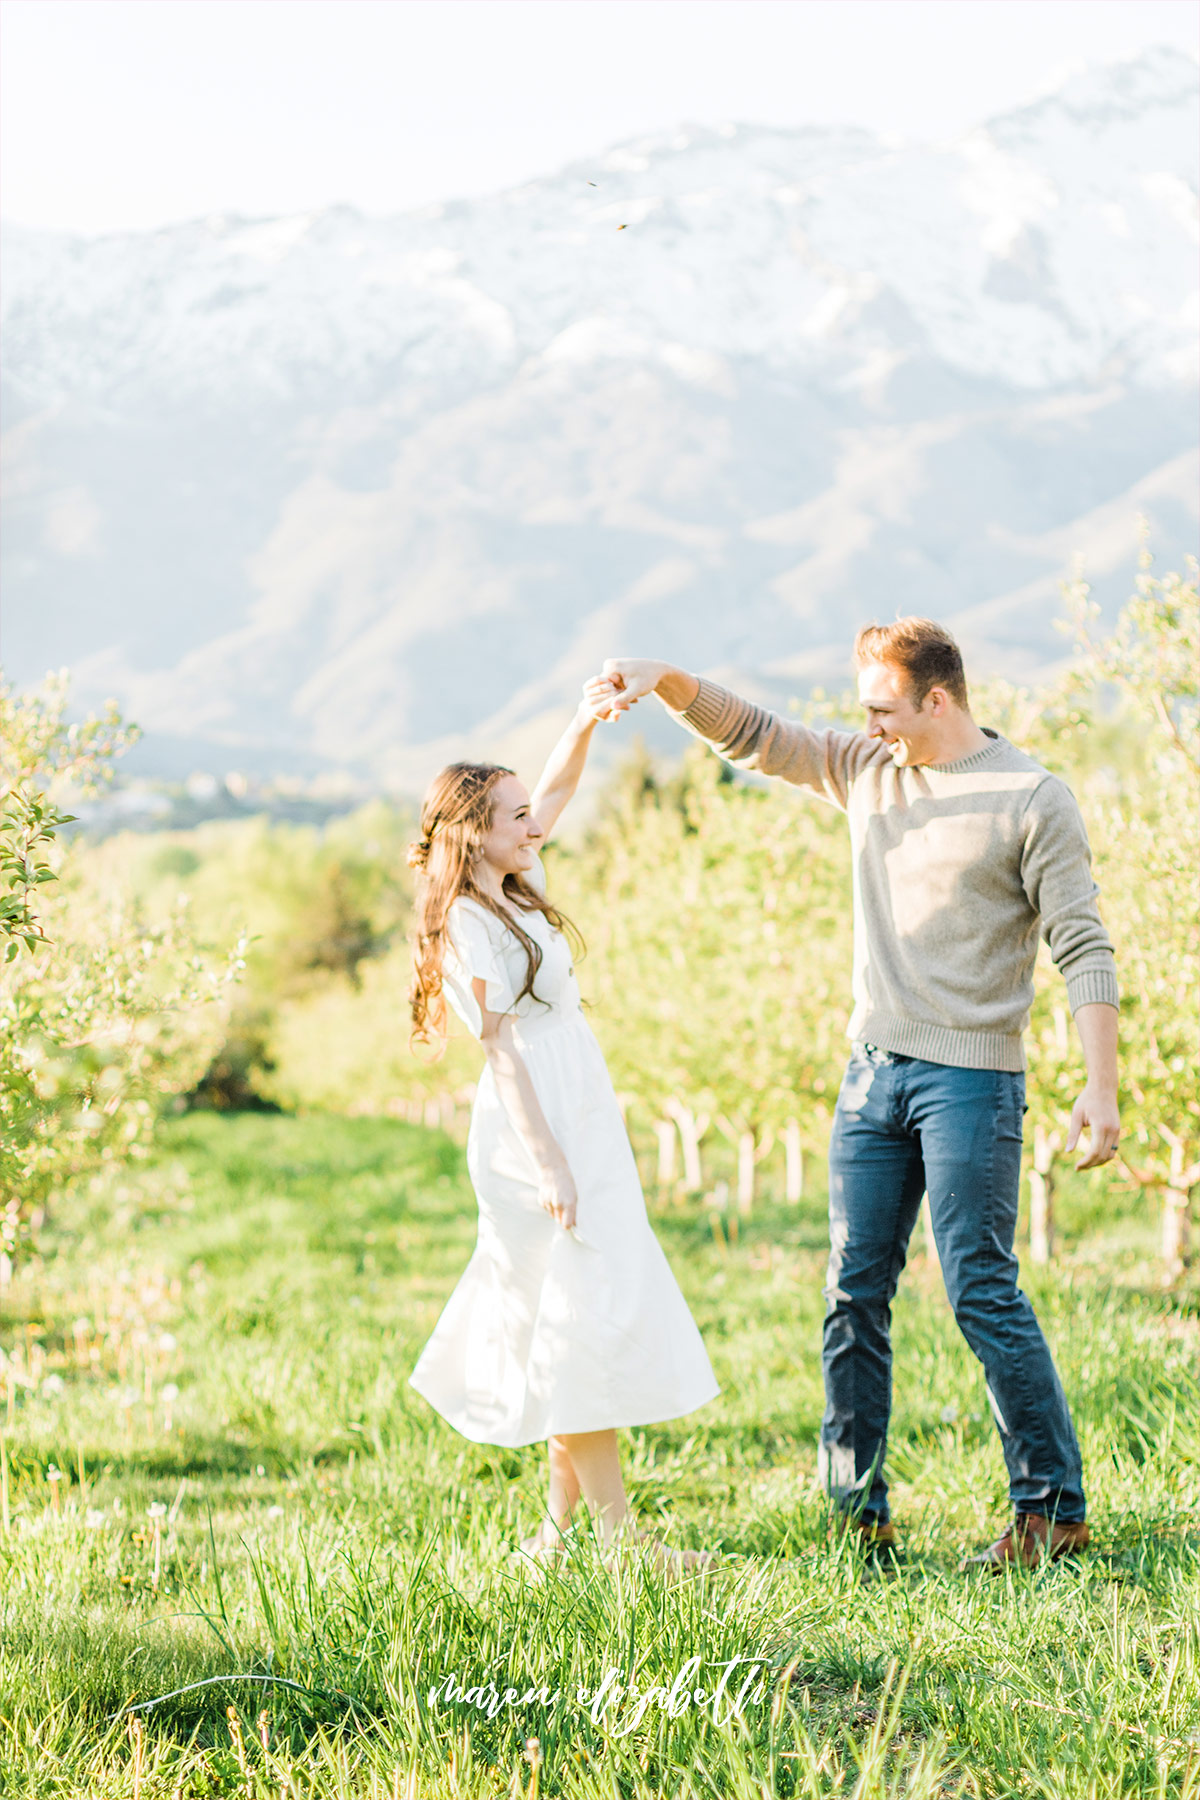 Spring engagement pictures at Burgess Orchards in Alpine, UT with a perfect view of the mountains.   Maren Elizabeth Photography